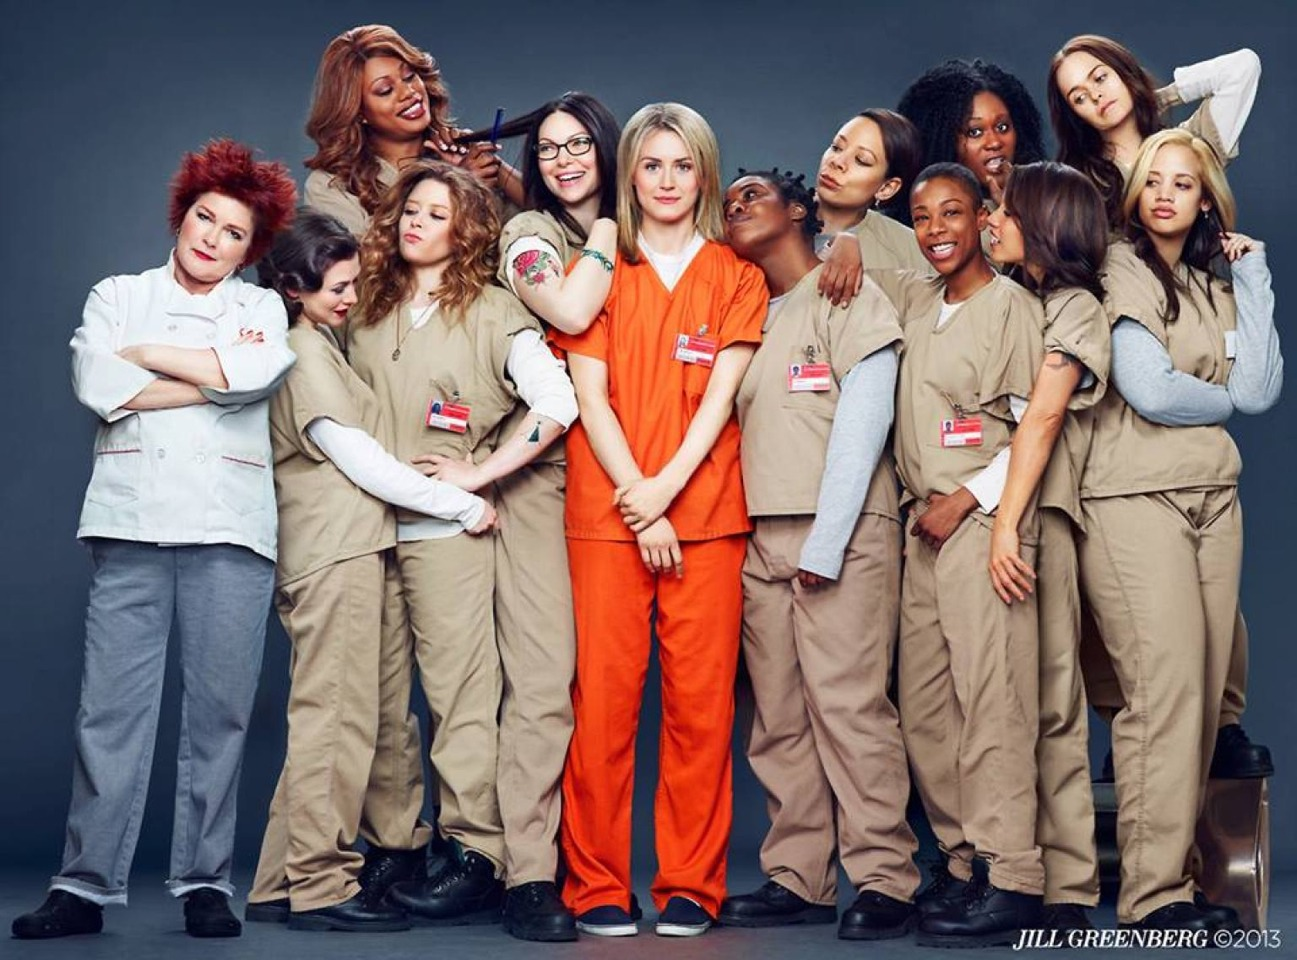 I'm beyond obsessed with 'Orange Is The New Black.' The show is found only on Netflix, and makes subscribing to Netflix worth it alone.